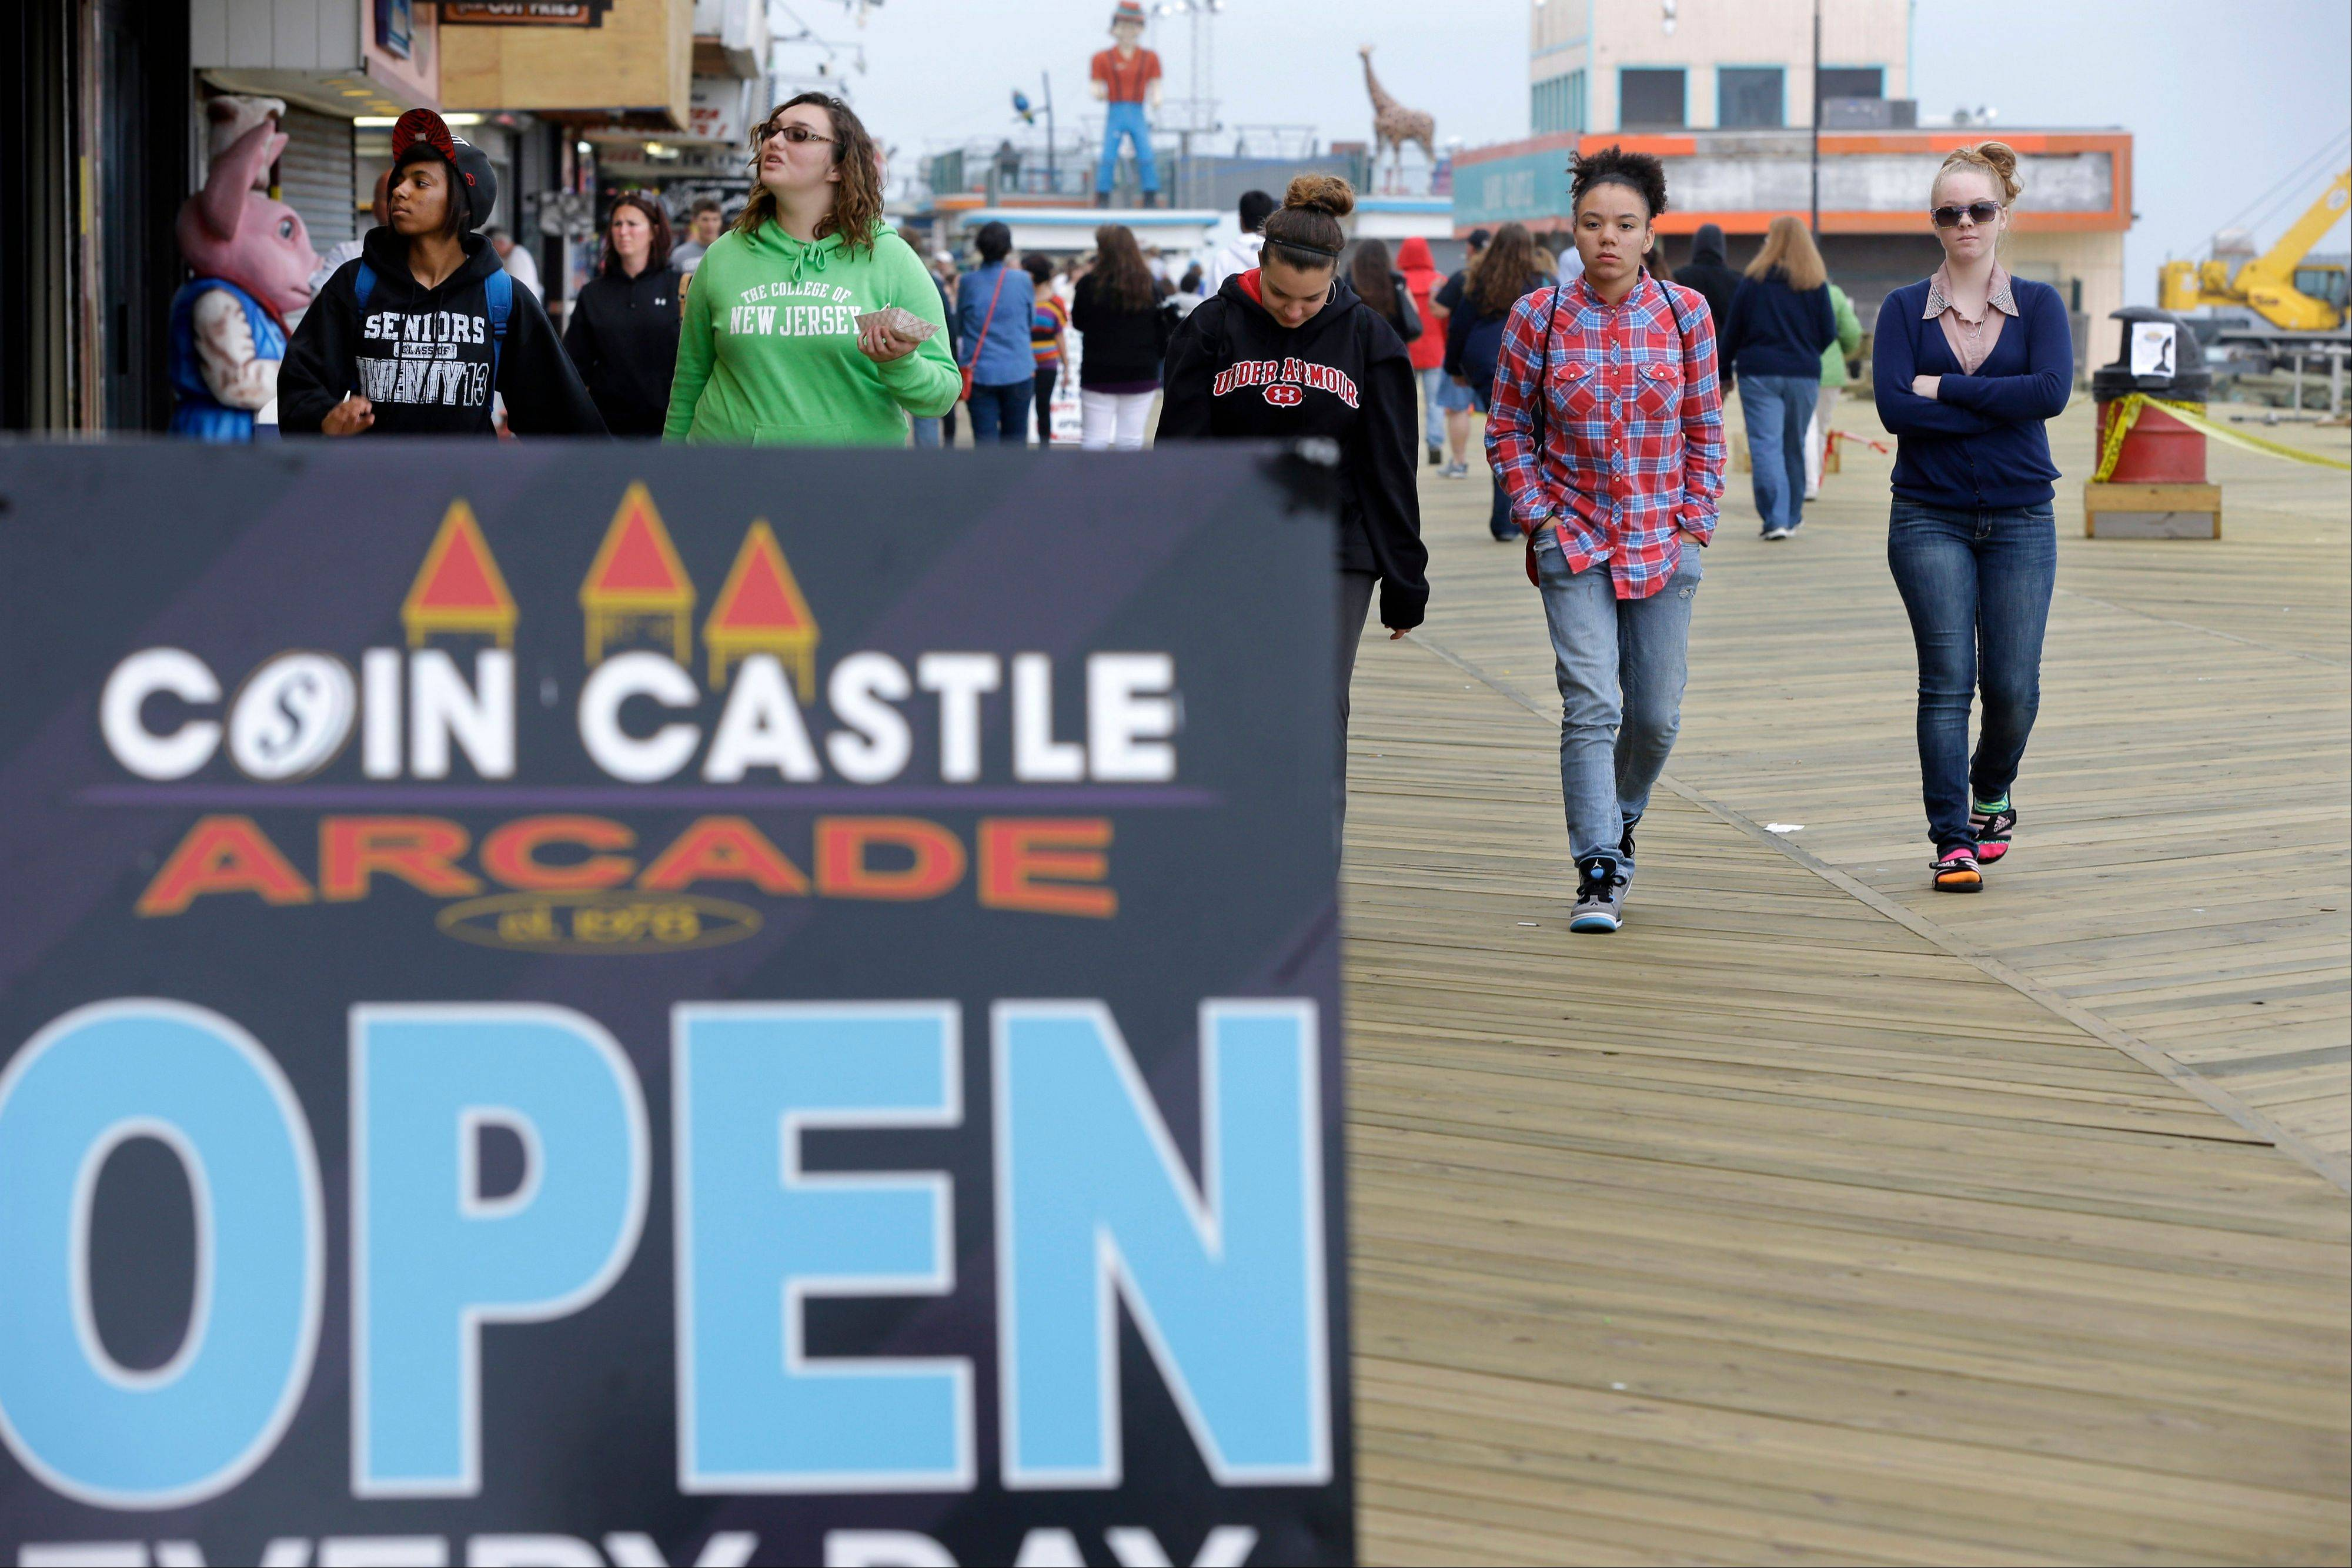 Visitors to the Jersey shore this weekend will find many of their favorite beaches and boardwalks ready for summer, thanks to a massive rebuilding effort after Superstorm Sandy. While several neighborhoods remain damaged, all but one of the storm-wrecked boardwalks should be ready for Memorial Day weekend.